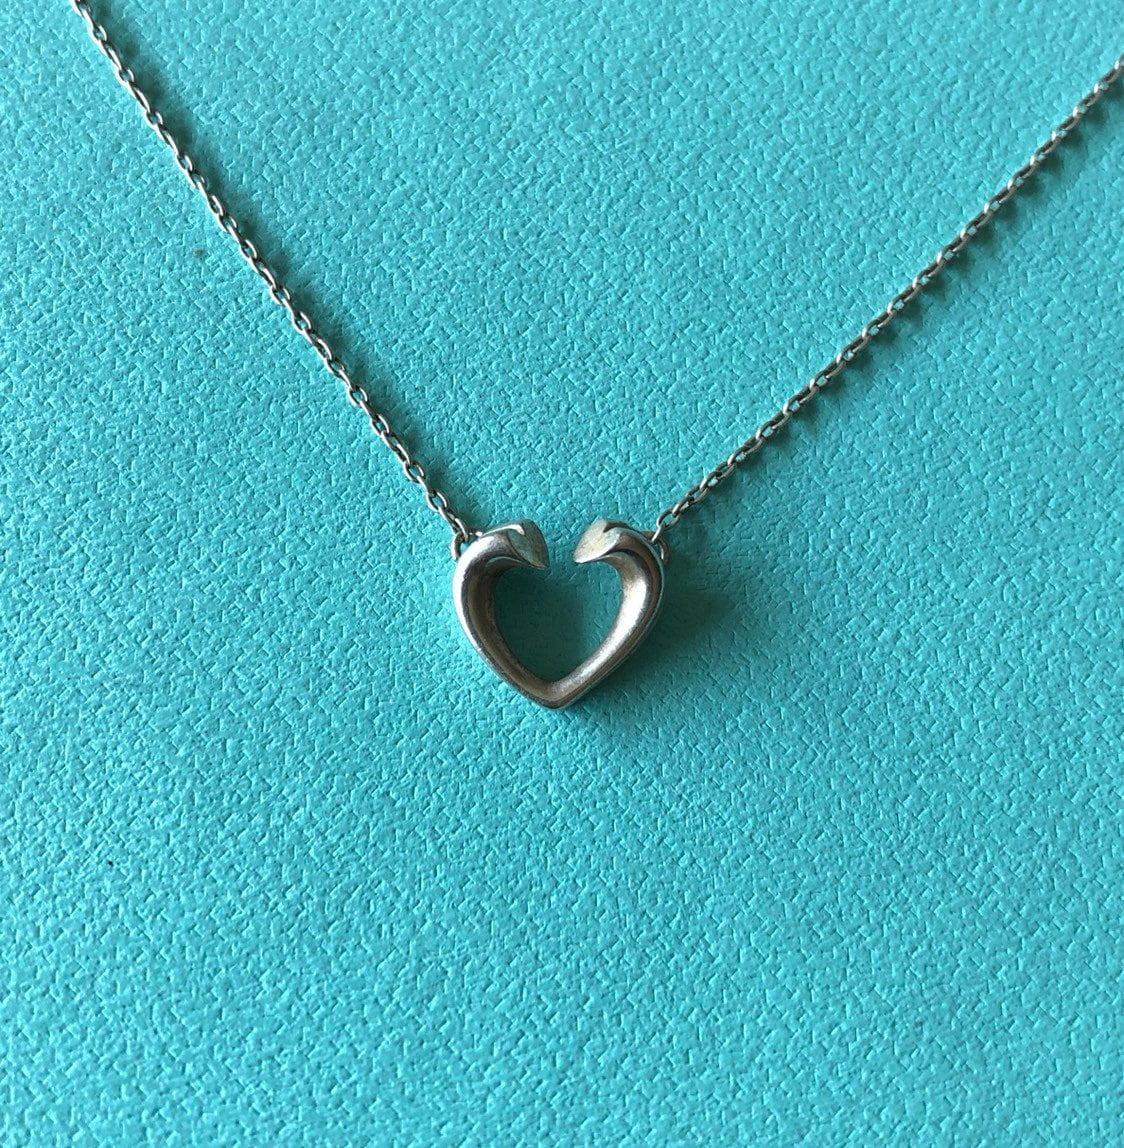 df45bd29a8bad Tiffany & Co. Paloma Picasso Small Open Heart Sterling Silver Necklace  Authentic Layaway Available